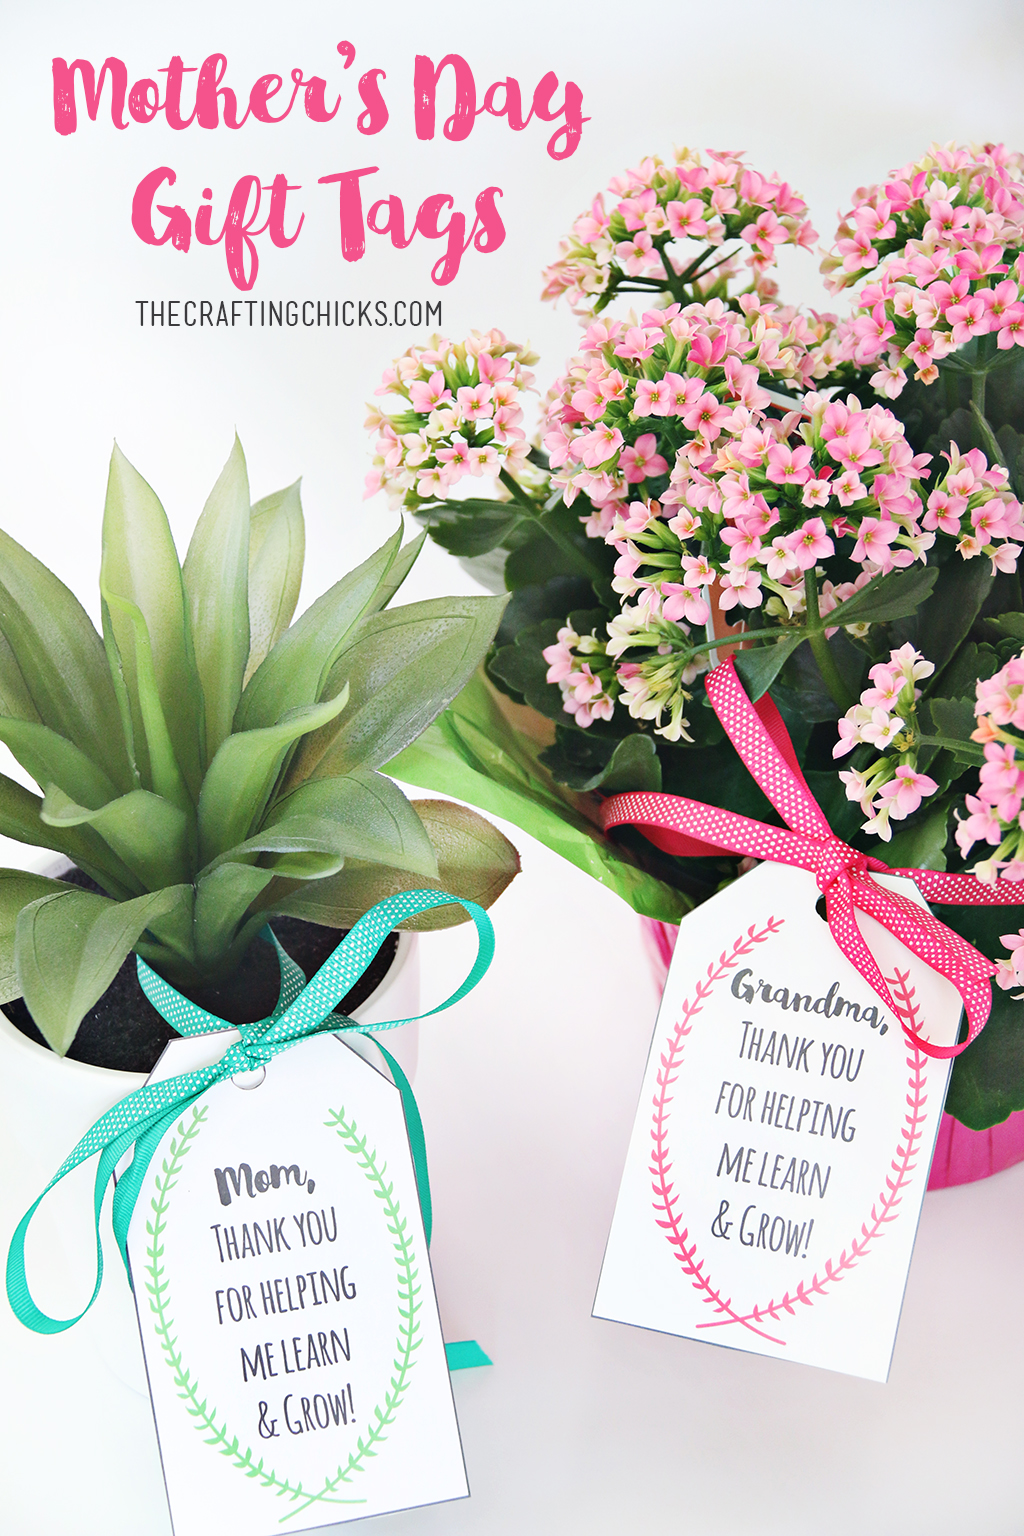 Mother's Day Plant Printable Gift Tags - Mother's and Grandmother's will love pretty flowers or plants with a gift tag that ties it all together.